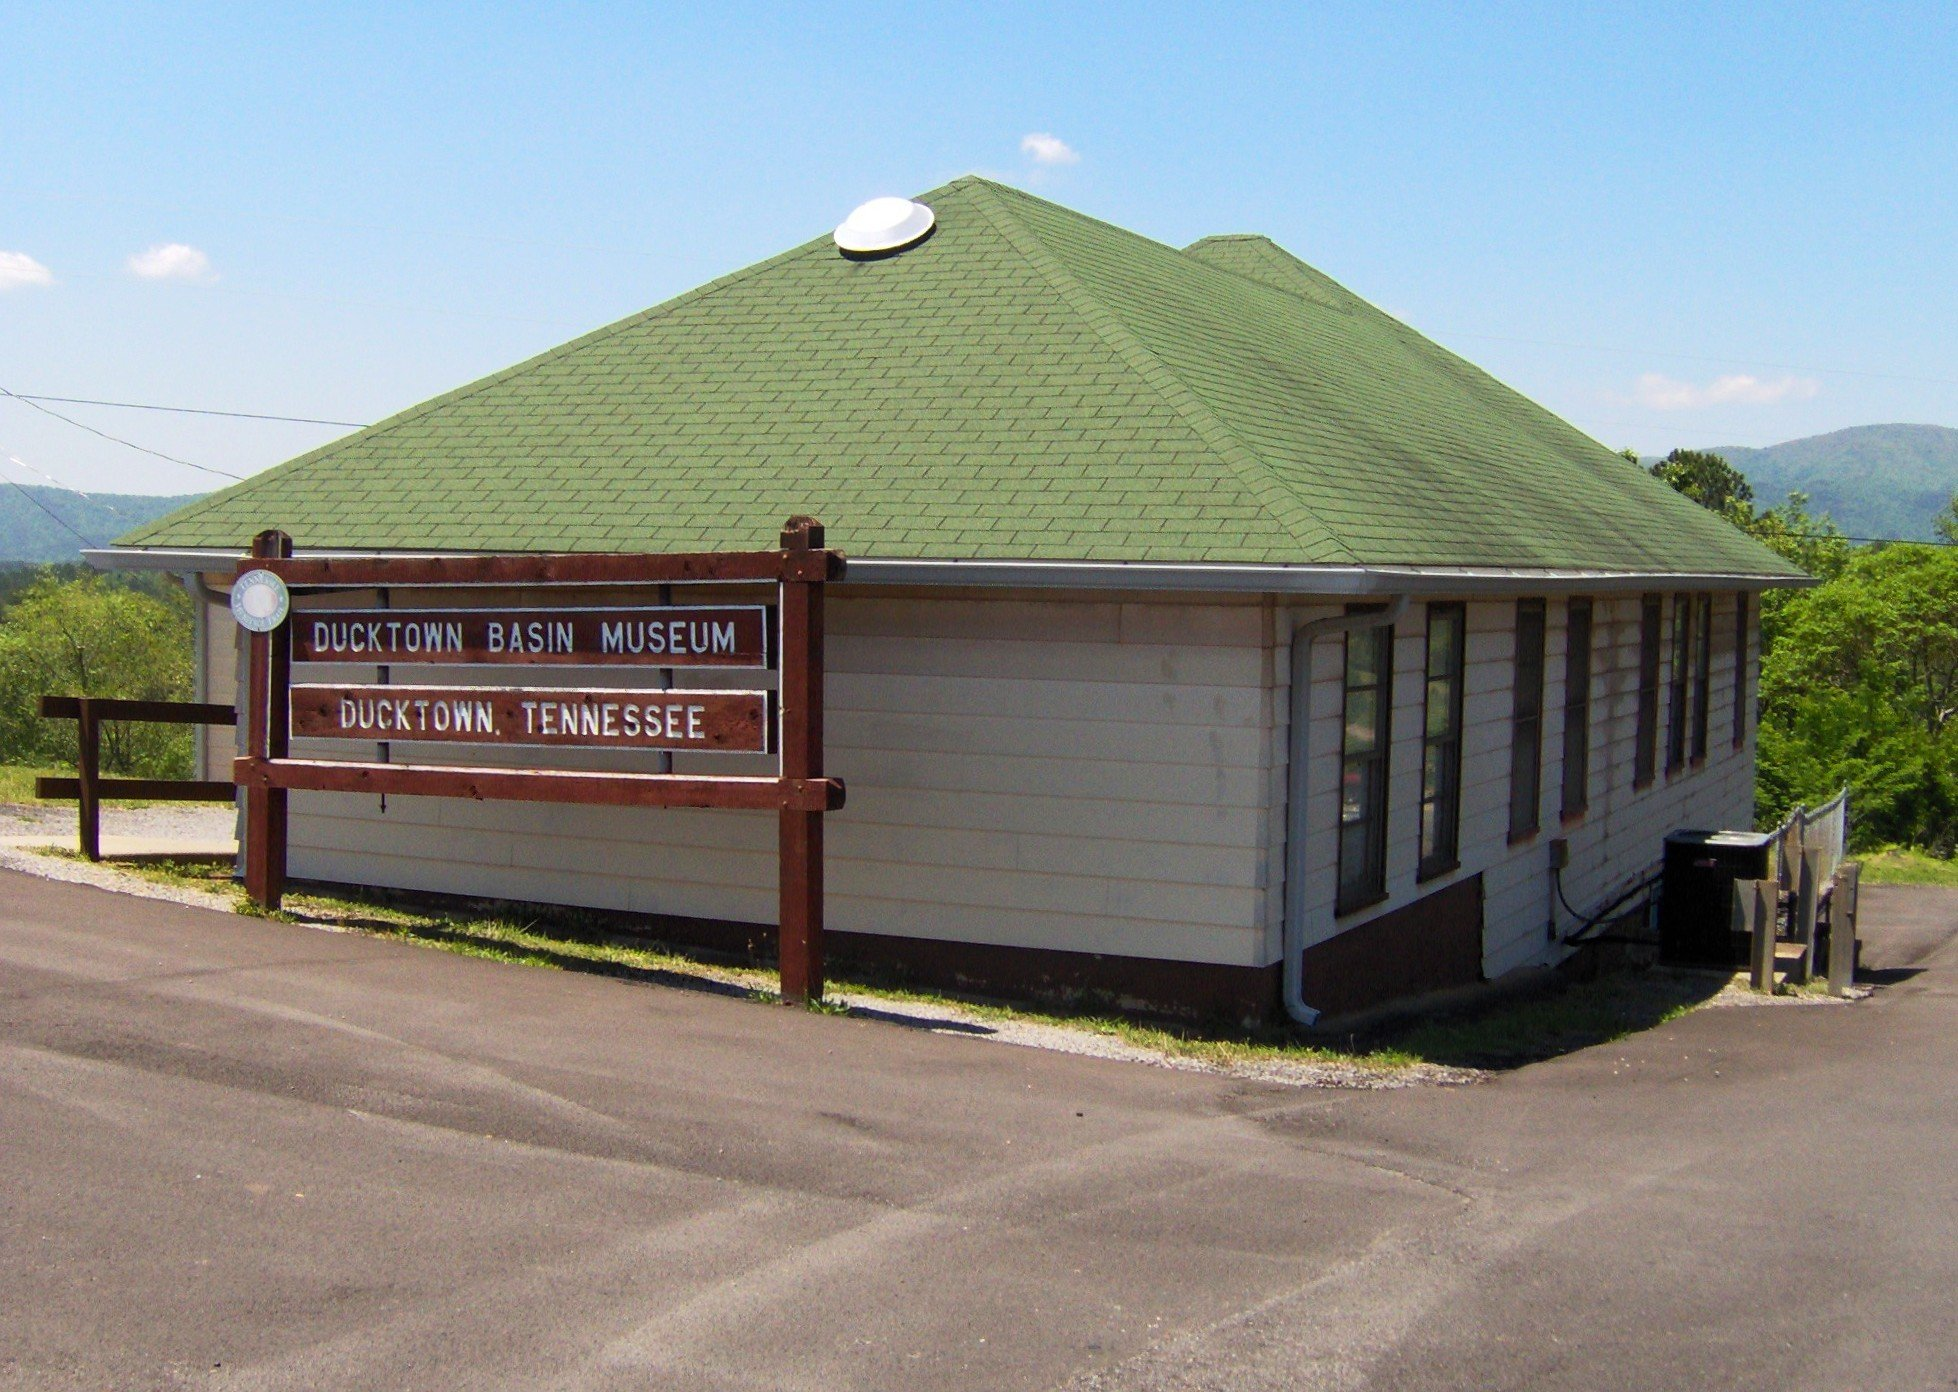 The Ducktown Basin Museum